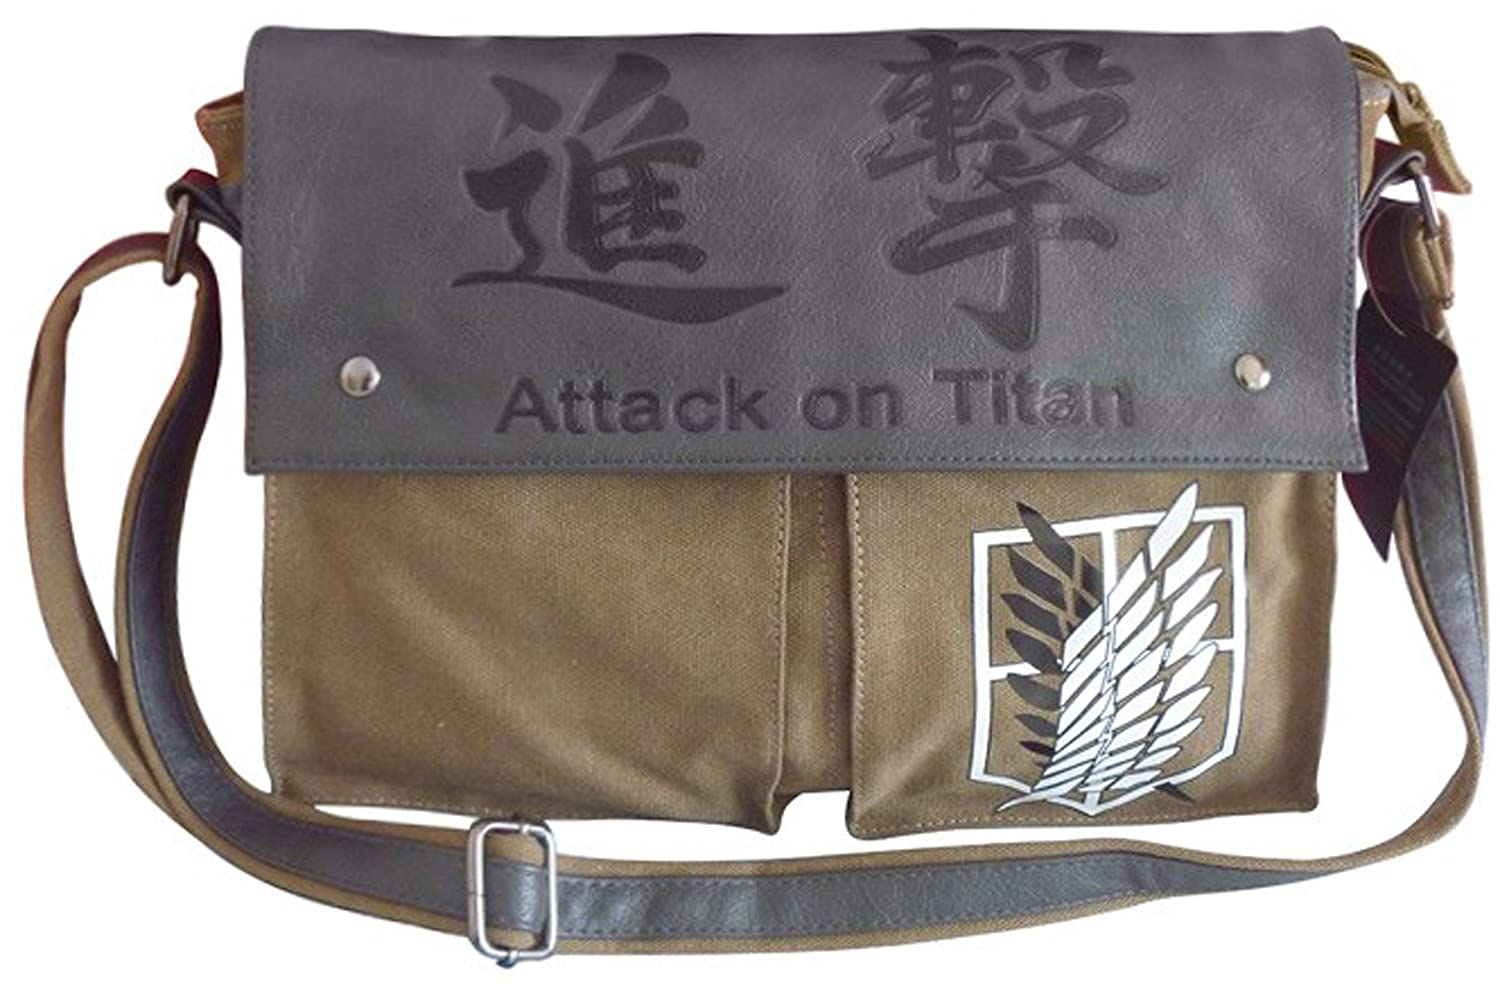 NuoYa001 Anime Shoulder Bag Canvas Messenger Satchel Attack on Titan no Kyojin Scouting anime shingeki no kyojin shoulder bag attack on titan sling pack school bags messenger bag travel male men s bag